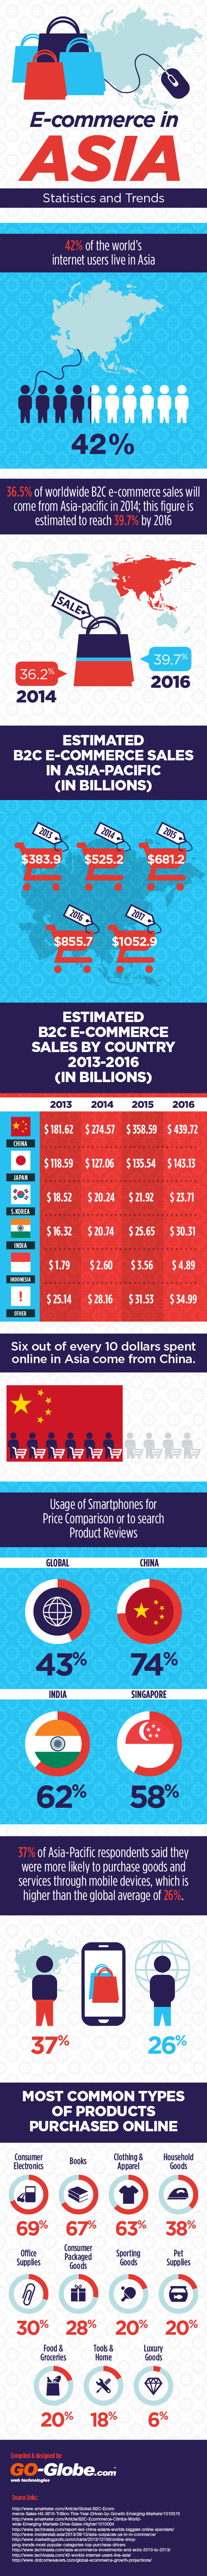 E-commerce in Asia  - Statistics and Trends